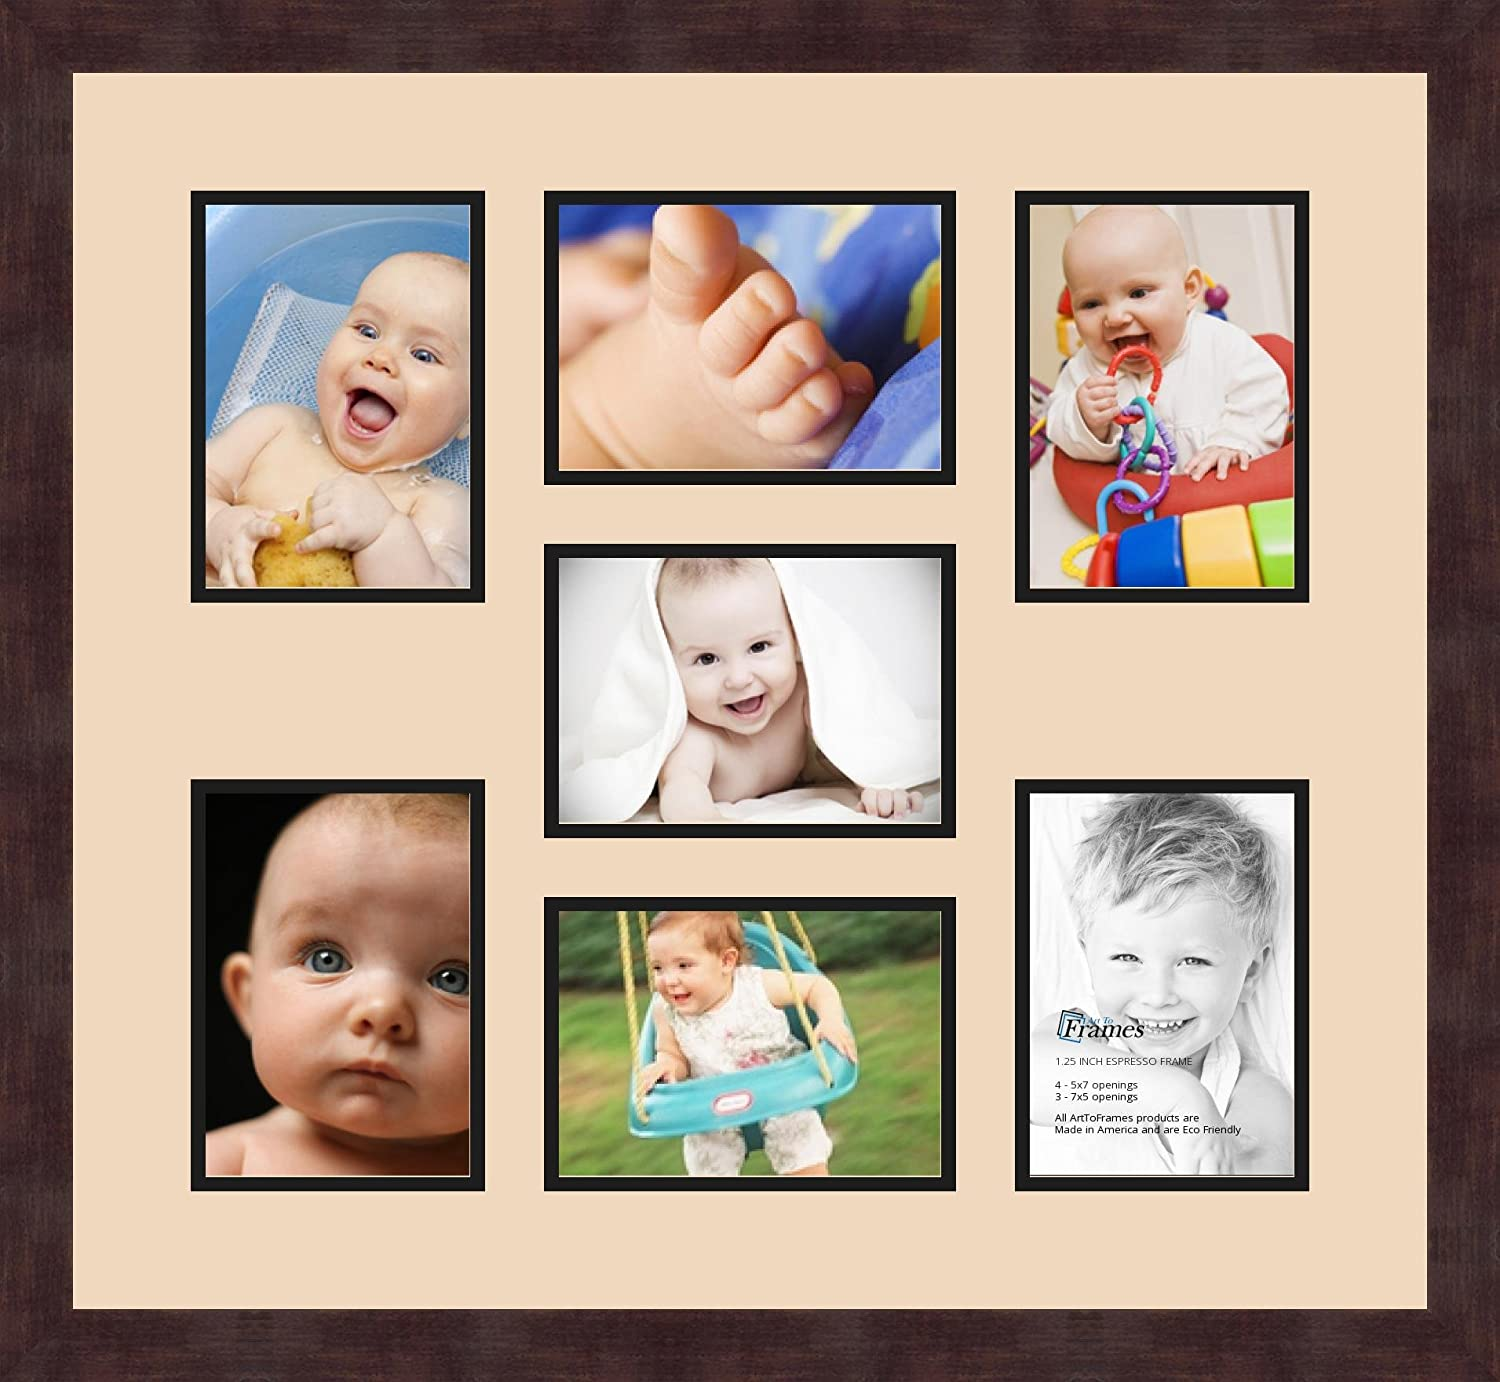 Art to Frames Double-Multimat-417-783//89-FRBW26061 Collage Frame Photo Mat Double Mat with 7-5x7 Openings and Espresso Frame